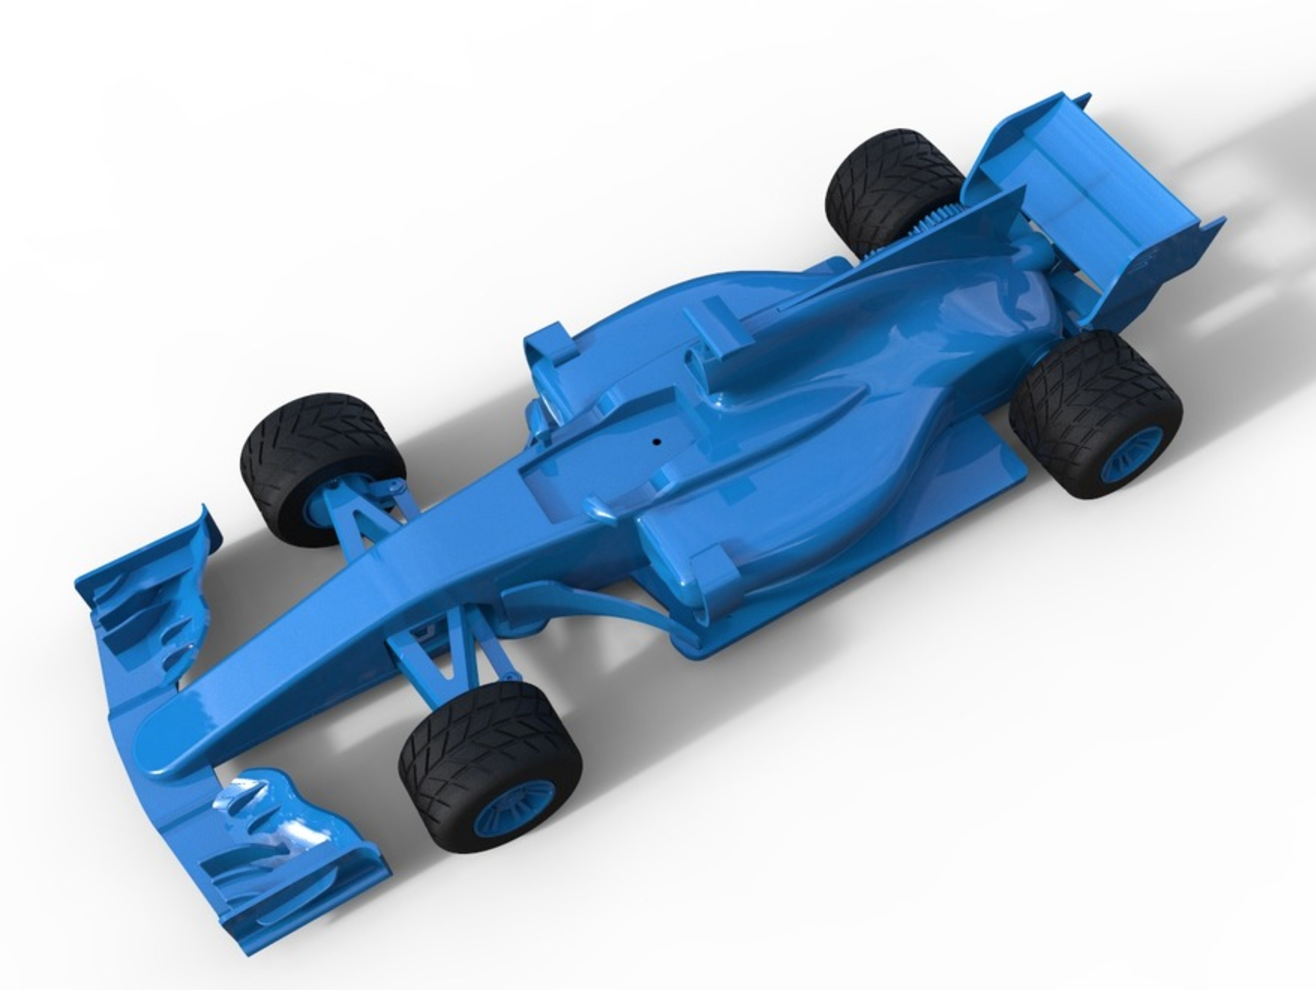 Capture d'écran 2017-04-24 à 17.54.01.png Download free STL file OPENRC F1 2017 updated Rain Tires • 3D printing template, Palmiga